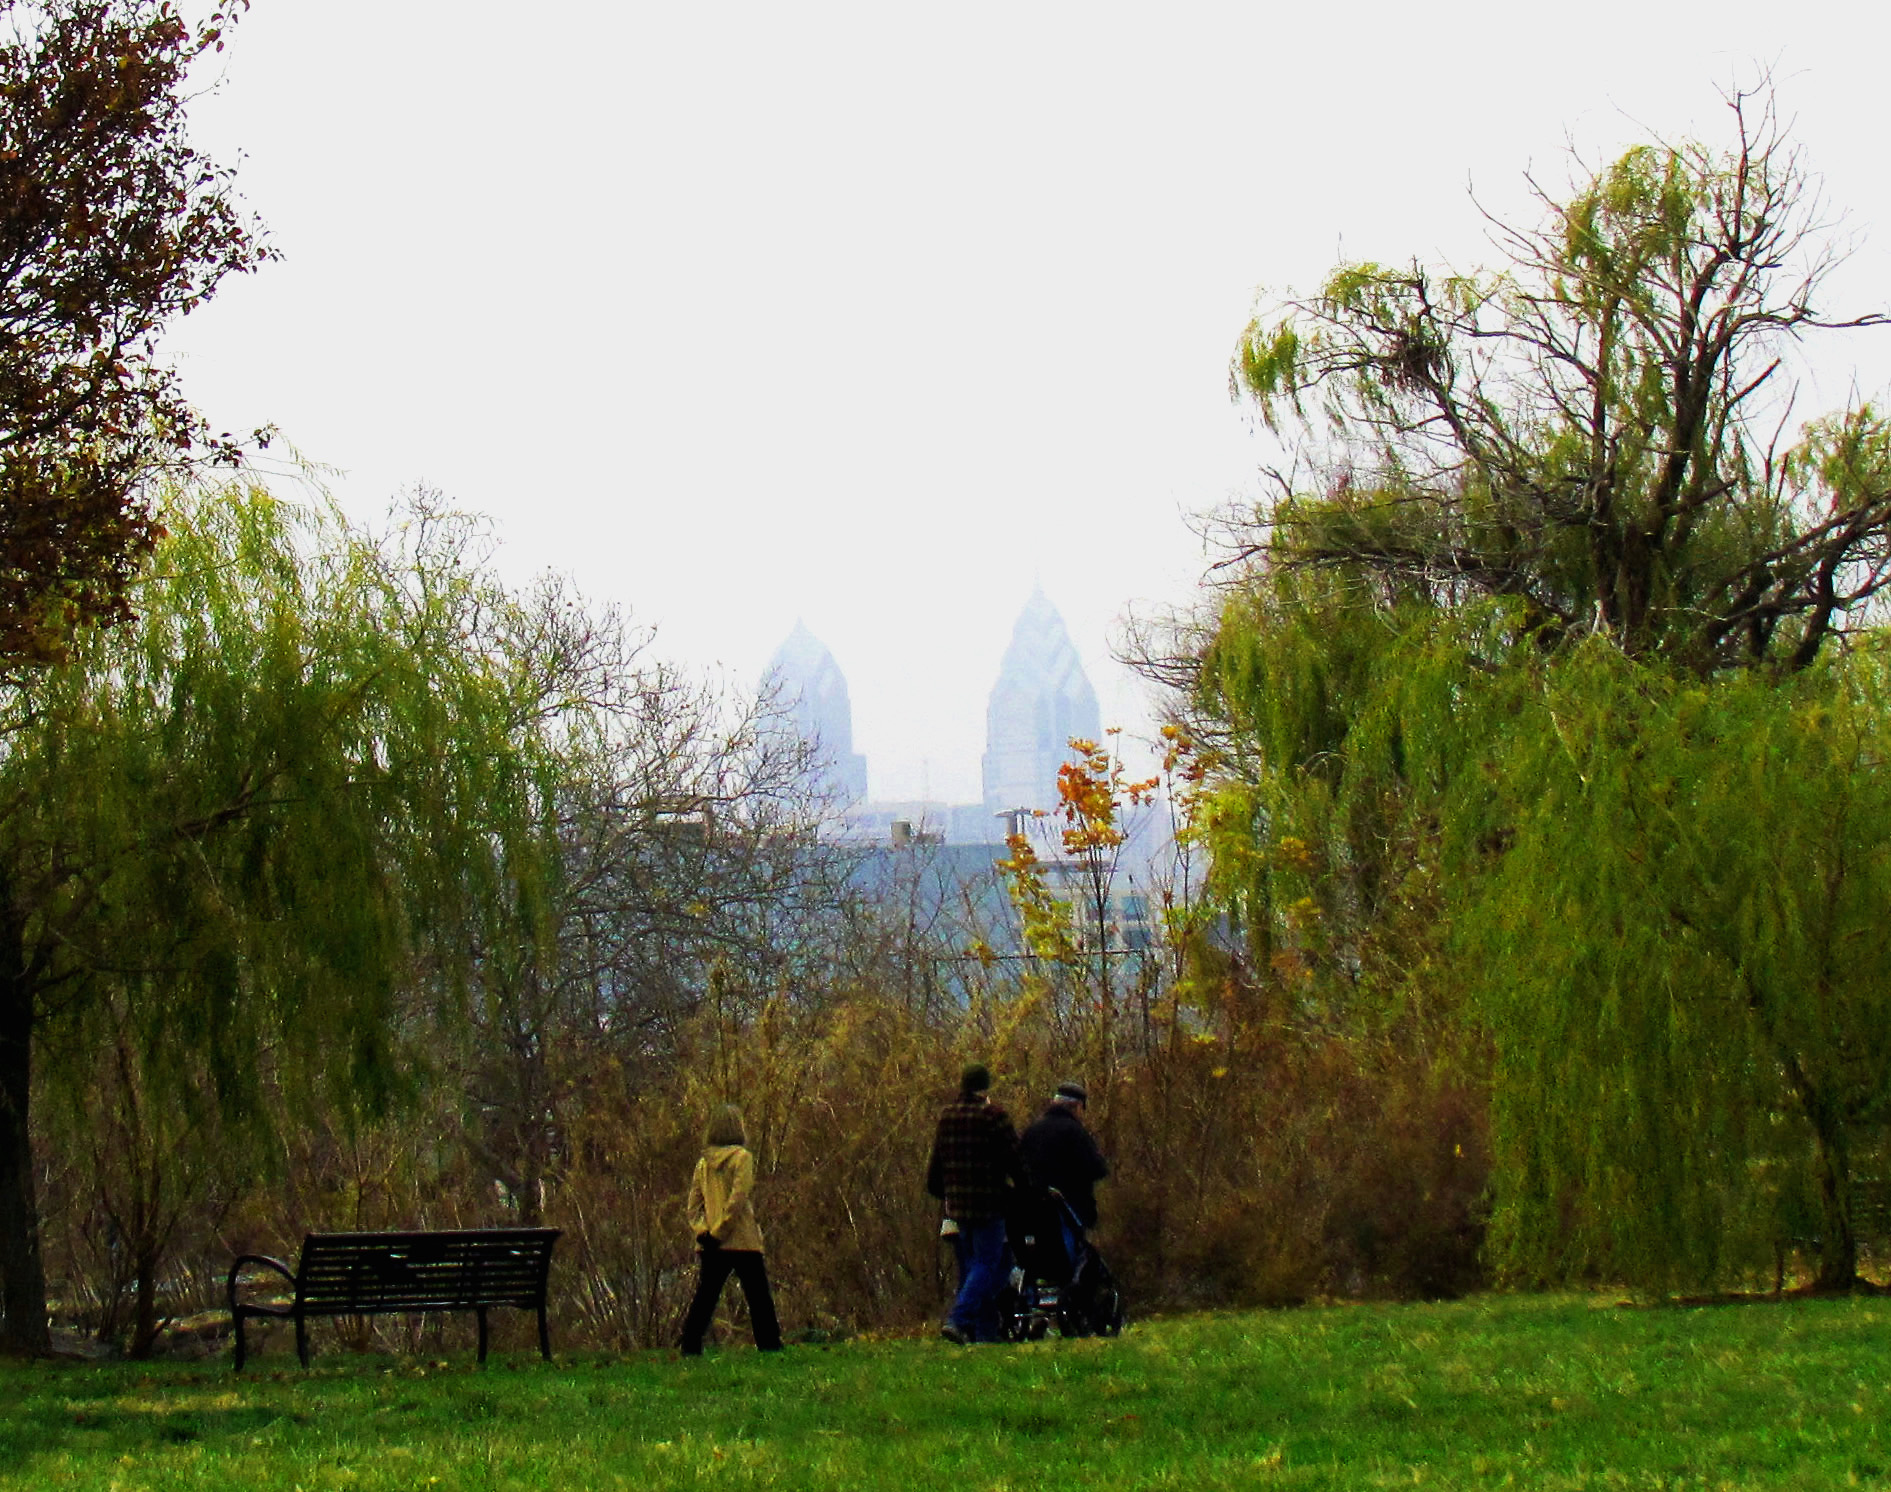 Sunday-Morning-Walkers-In-Penn-Treaty-Park-Philly